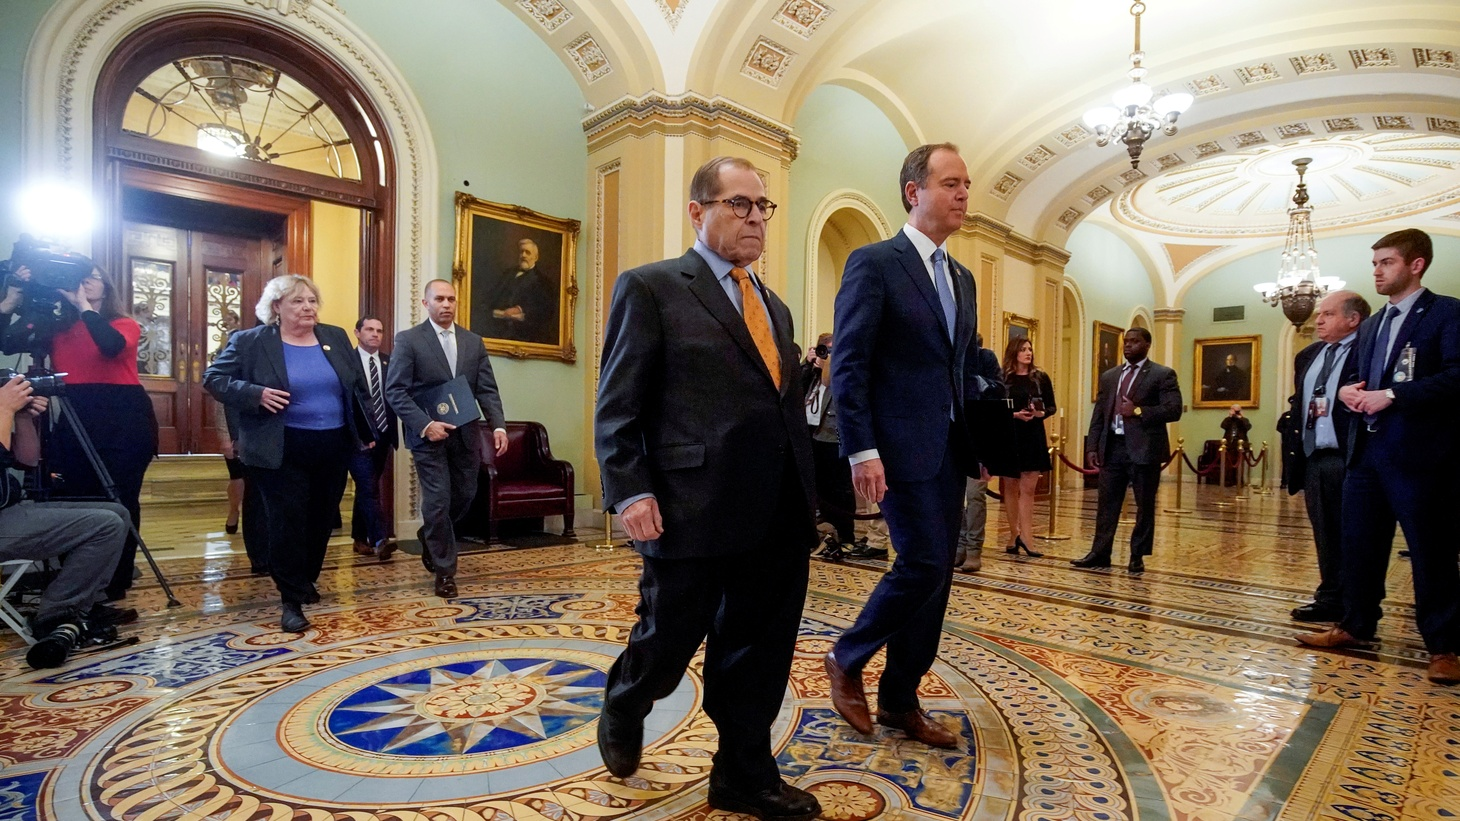 House impeachment managers, including Rep. Zoe Lofgren (D-CA); Rep. Jason Crow (D-CO); House Democratic Caucus Chairman Hakeem Jeffries (D-NY); House Judiciary Committee Chairman Jerrold Nadler (D-NY); and lead manager House Intelligence Committee Chairman Adam Schiff (D-CA), walk through the Ohio Clock Corridor as they arrive for the procedural start of the Senate impeachment trial of U.S. President Donald Trump at the U.S. Capitol in Washington, U.S., January 16, 2020.